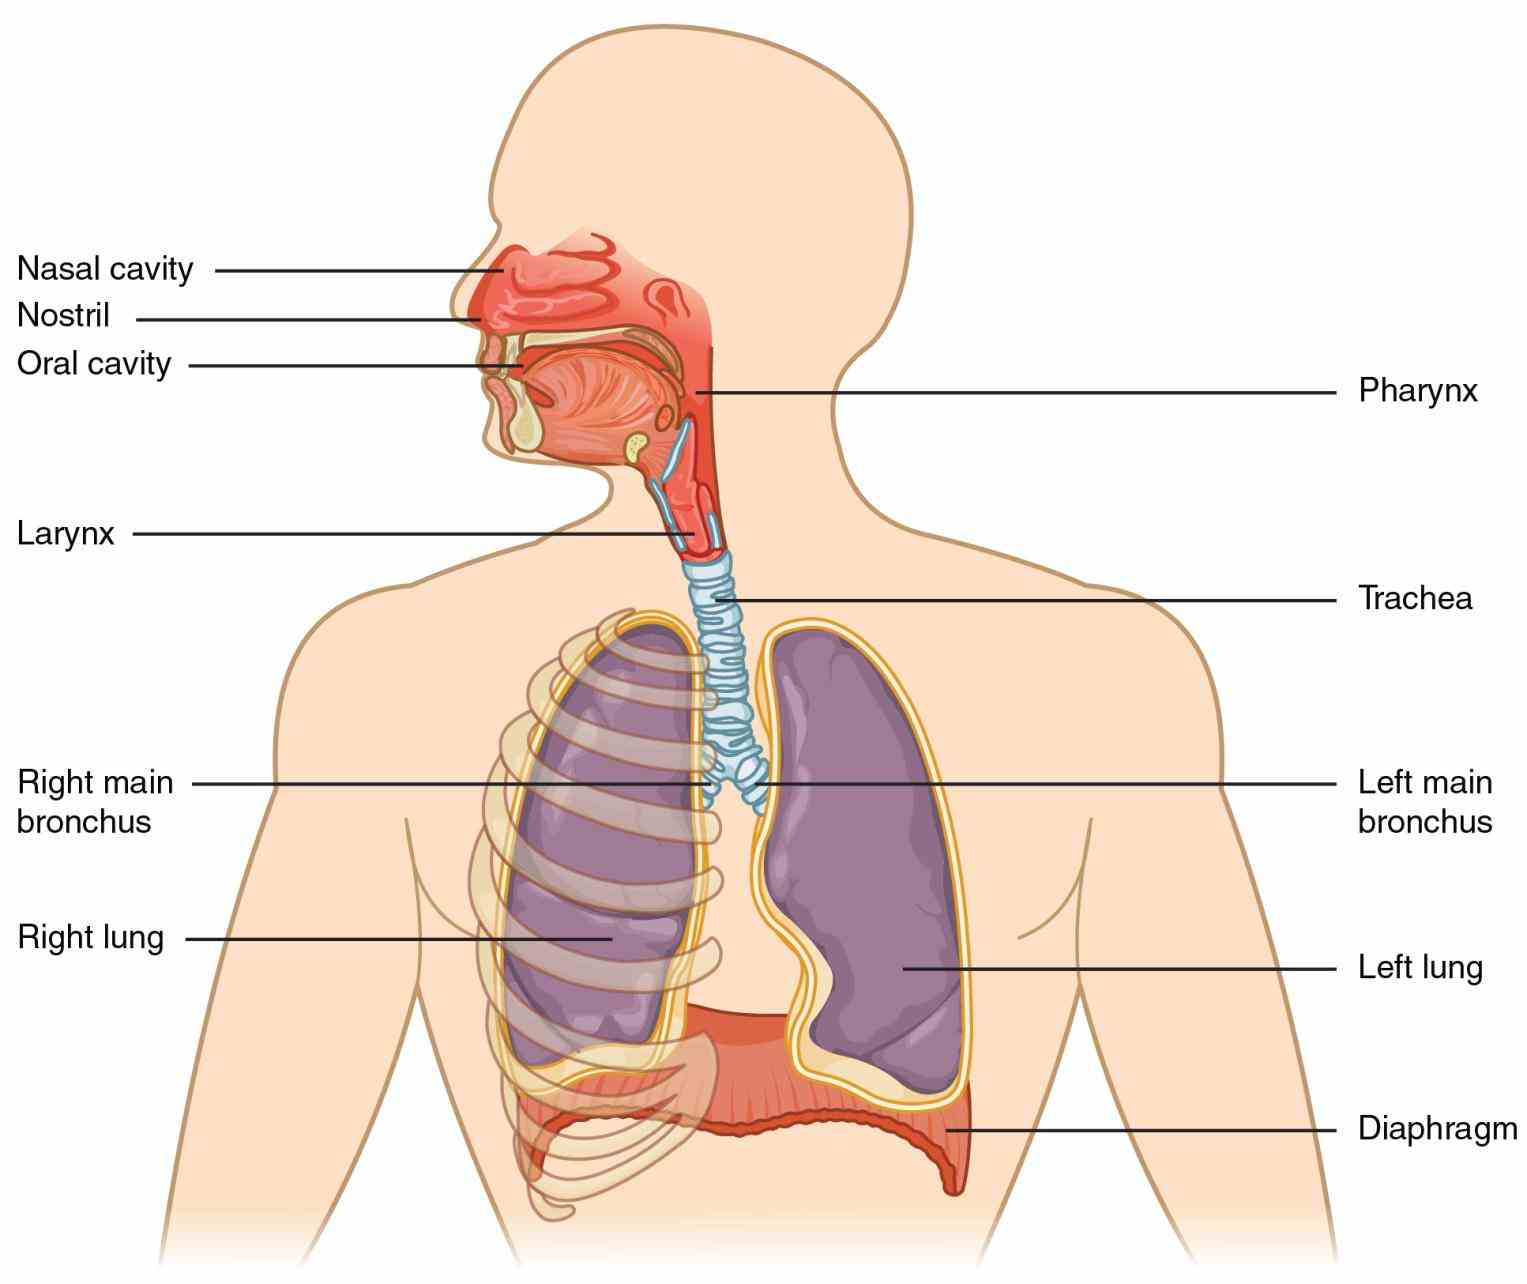 pharynx; esophagus; stomach; small intestine; large rectum; accessory organs  de Major Organ Of The Digestive System mai major organs